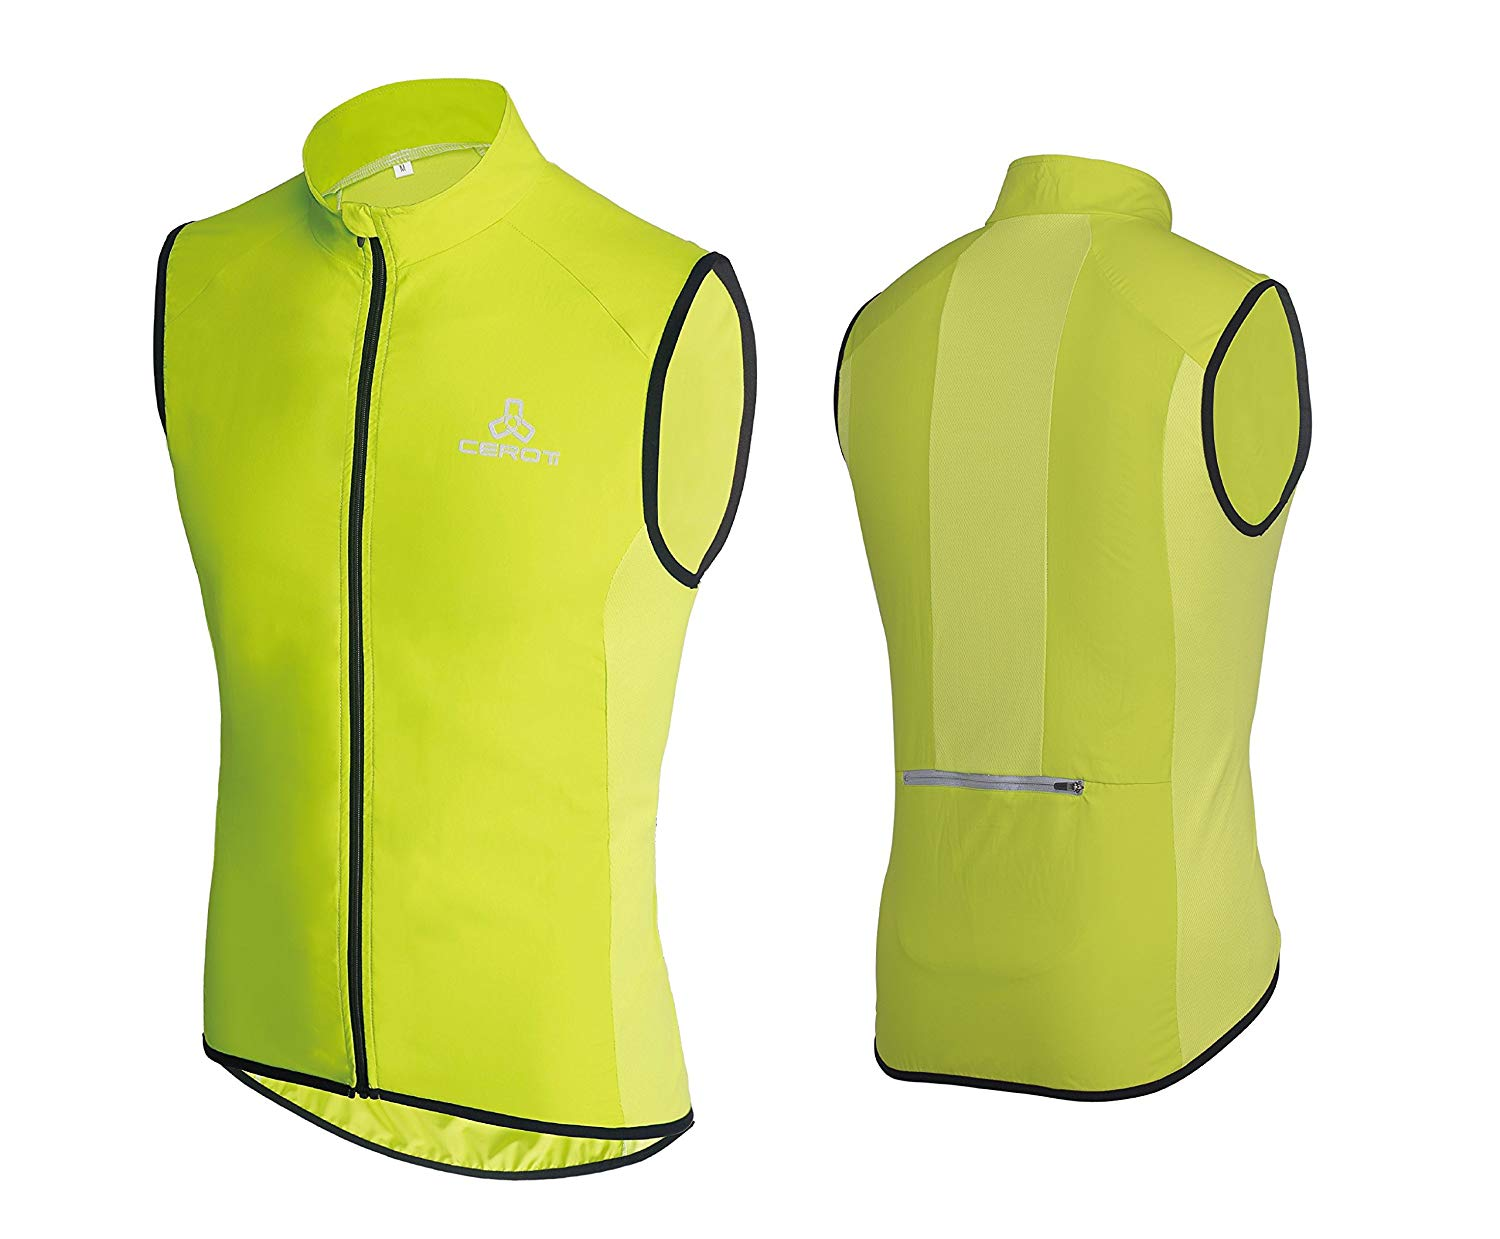 Cycling Vest Steady 2019 New Led Wireless Cycling Vest Mtb Bike Bag Safety Led Turn Signal Light Vest Bicycle Reflective Warning Vests 20l Back To Search Resultssports & Entertainment